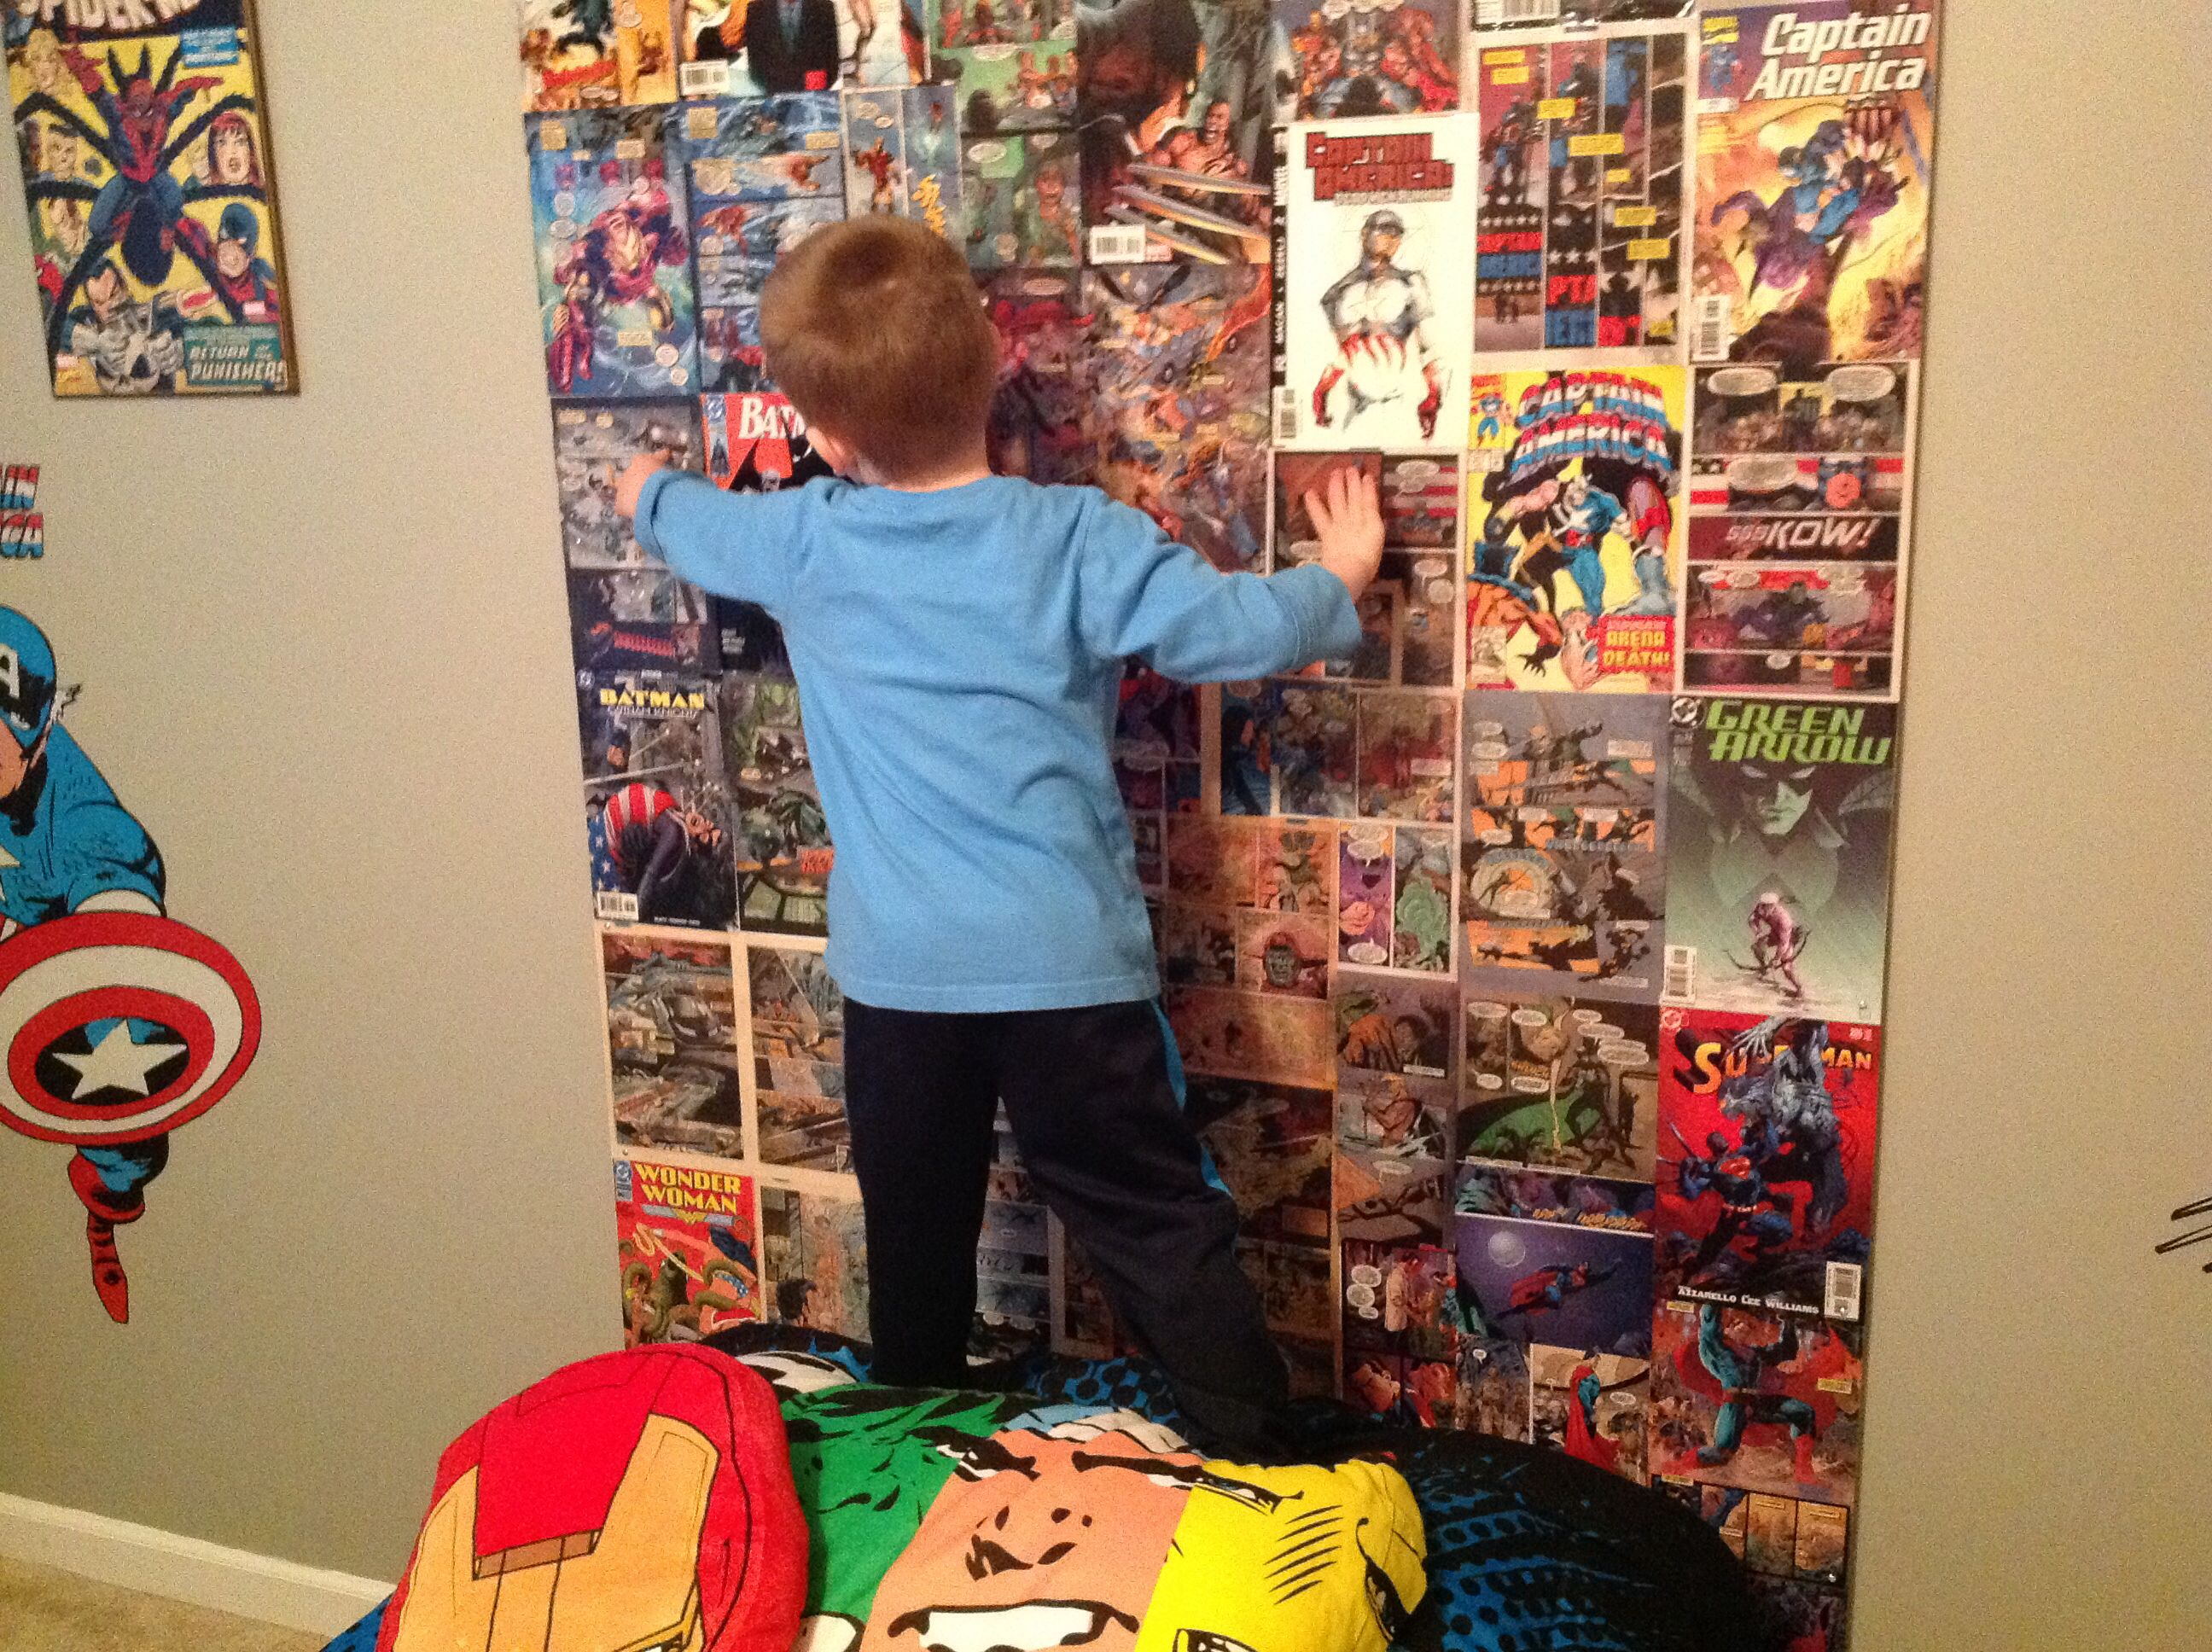 My sons super hero bedroom homemade backboard from ic books I